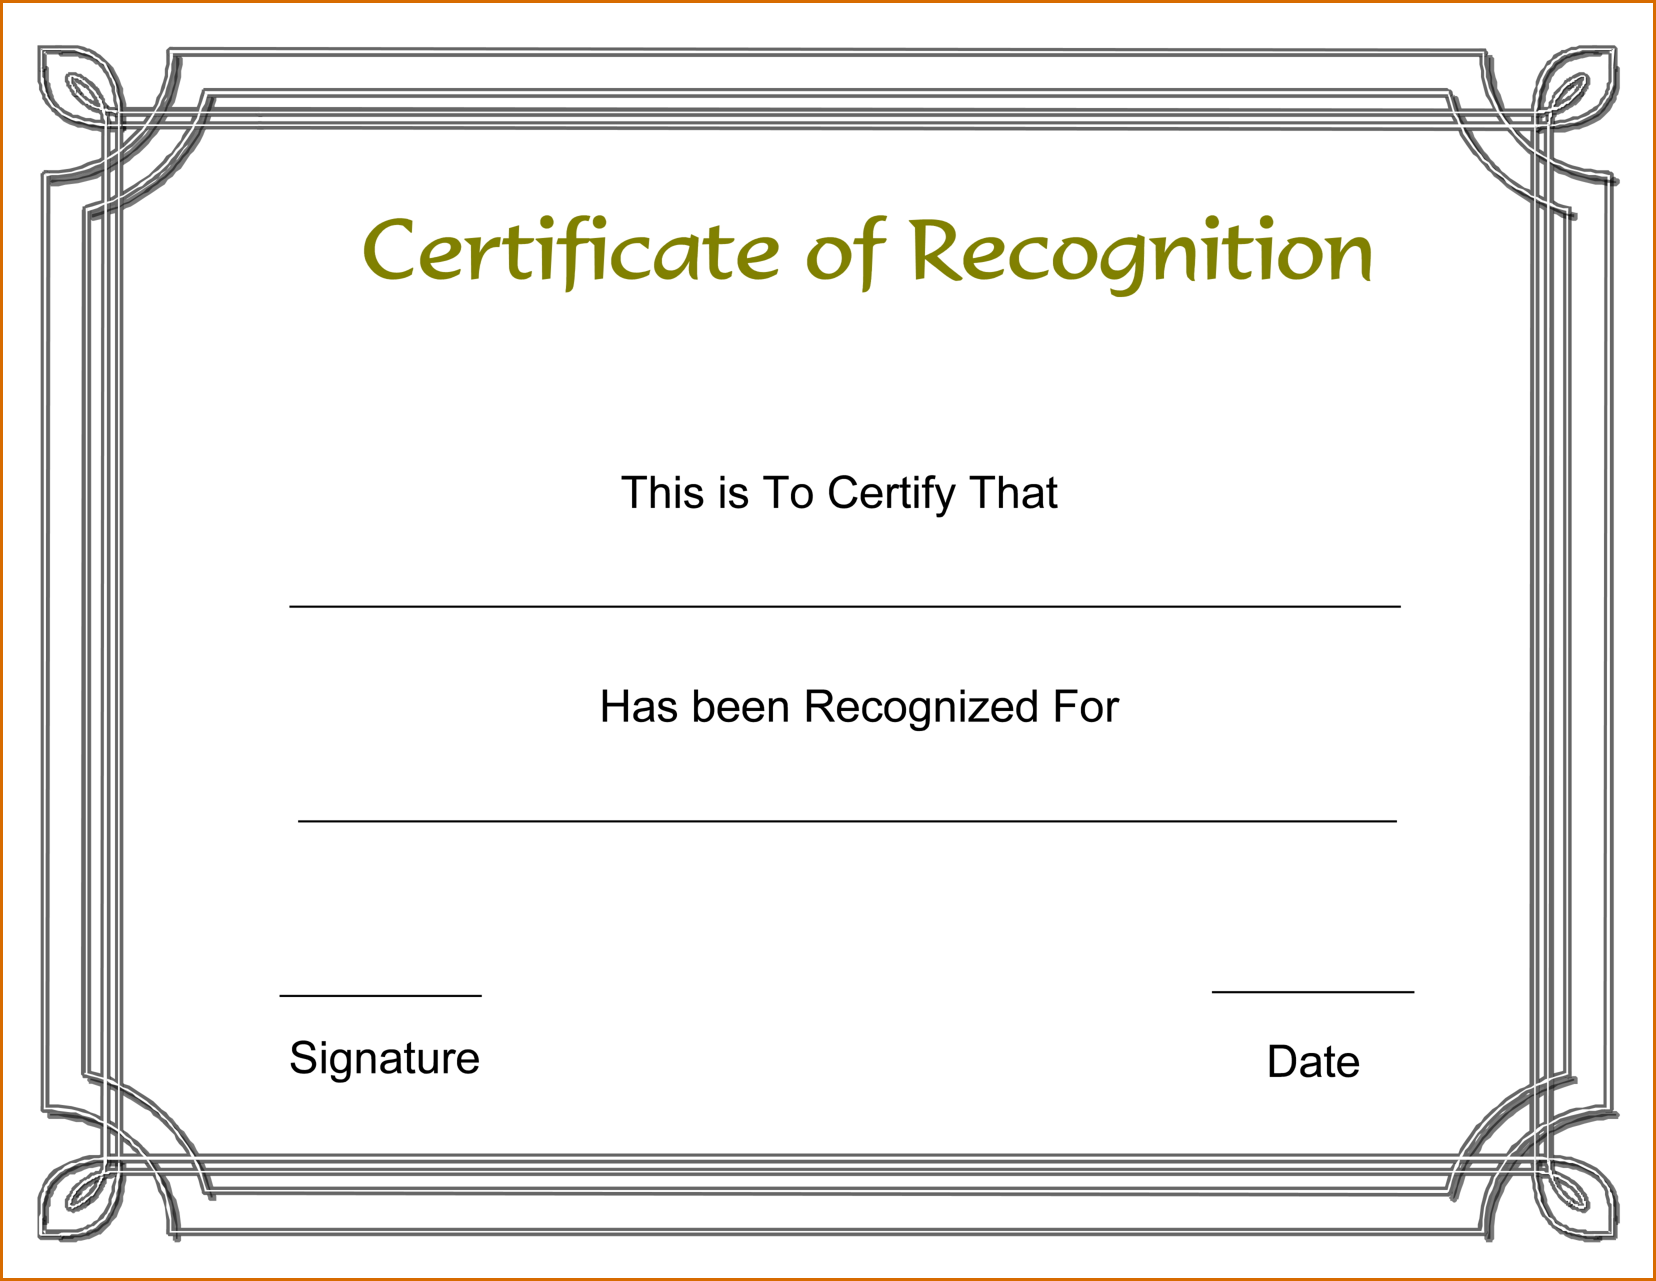 Template For Recognition Certificate Certificate Of Recognition Template Certificate Of Achievement Template Free Certificate Templates